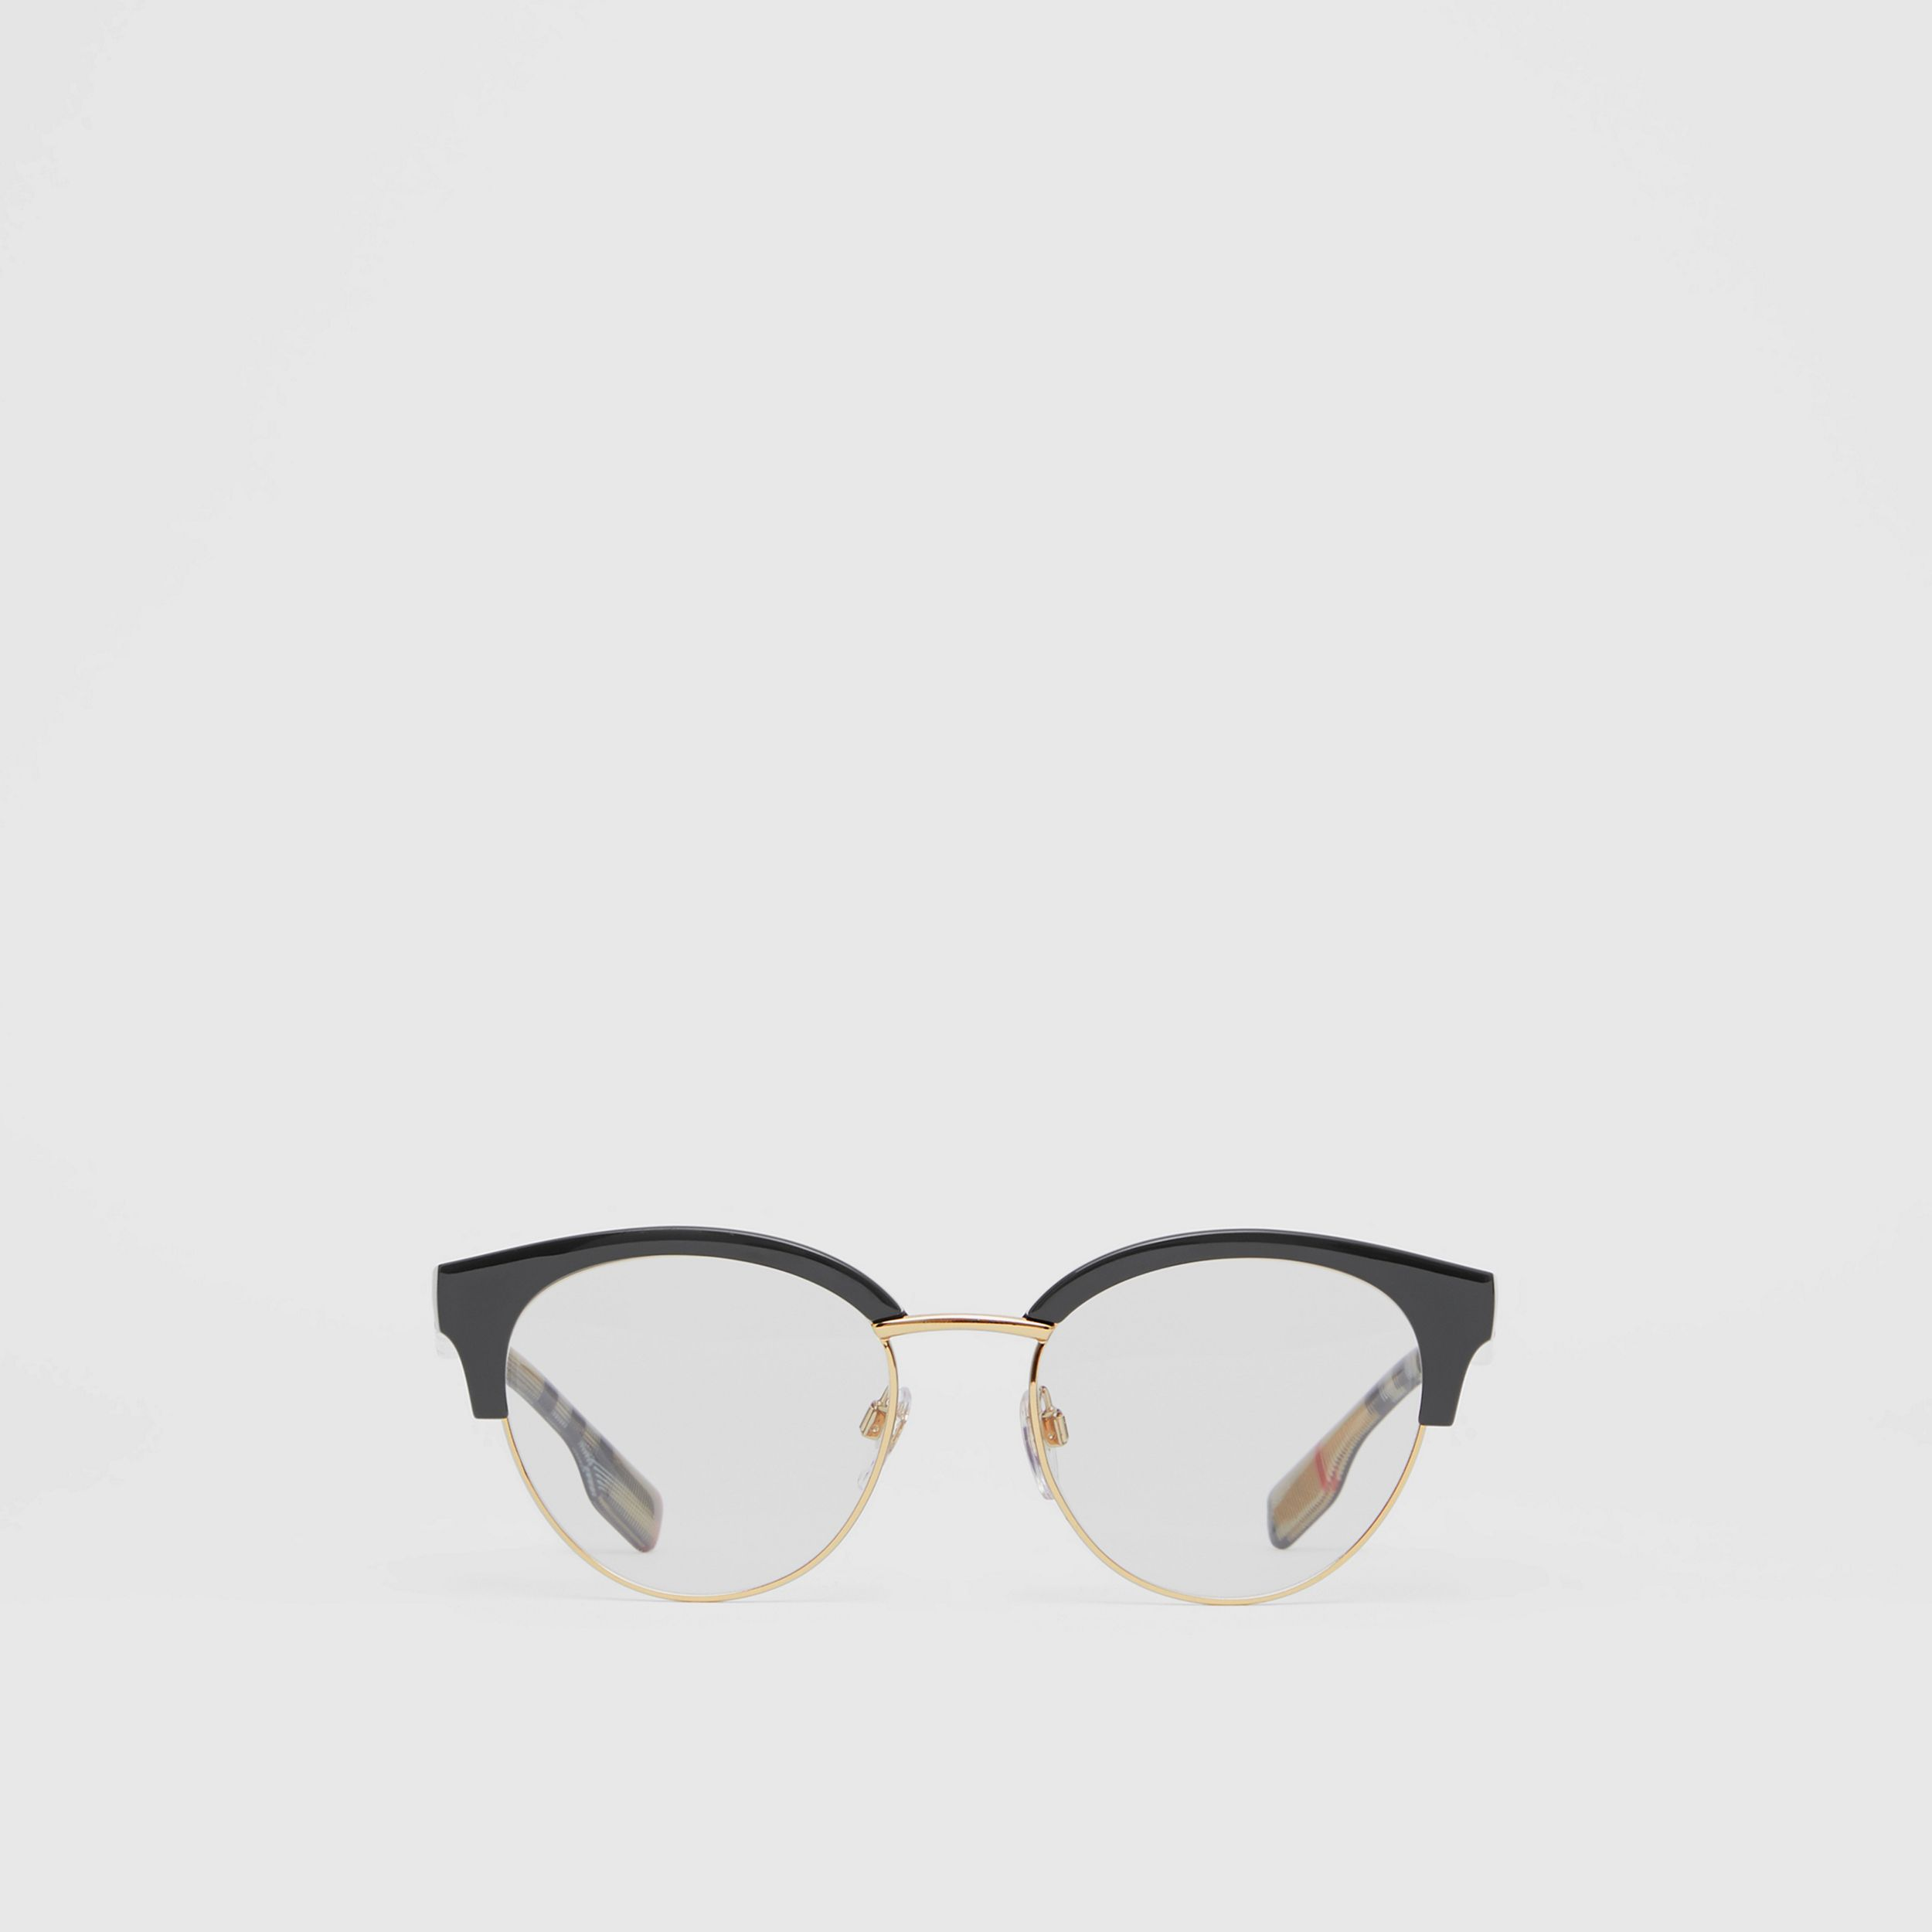 Cat-eye Optical Frames in Black/beige - Women | Burberry - 1